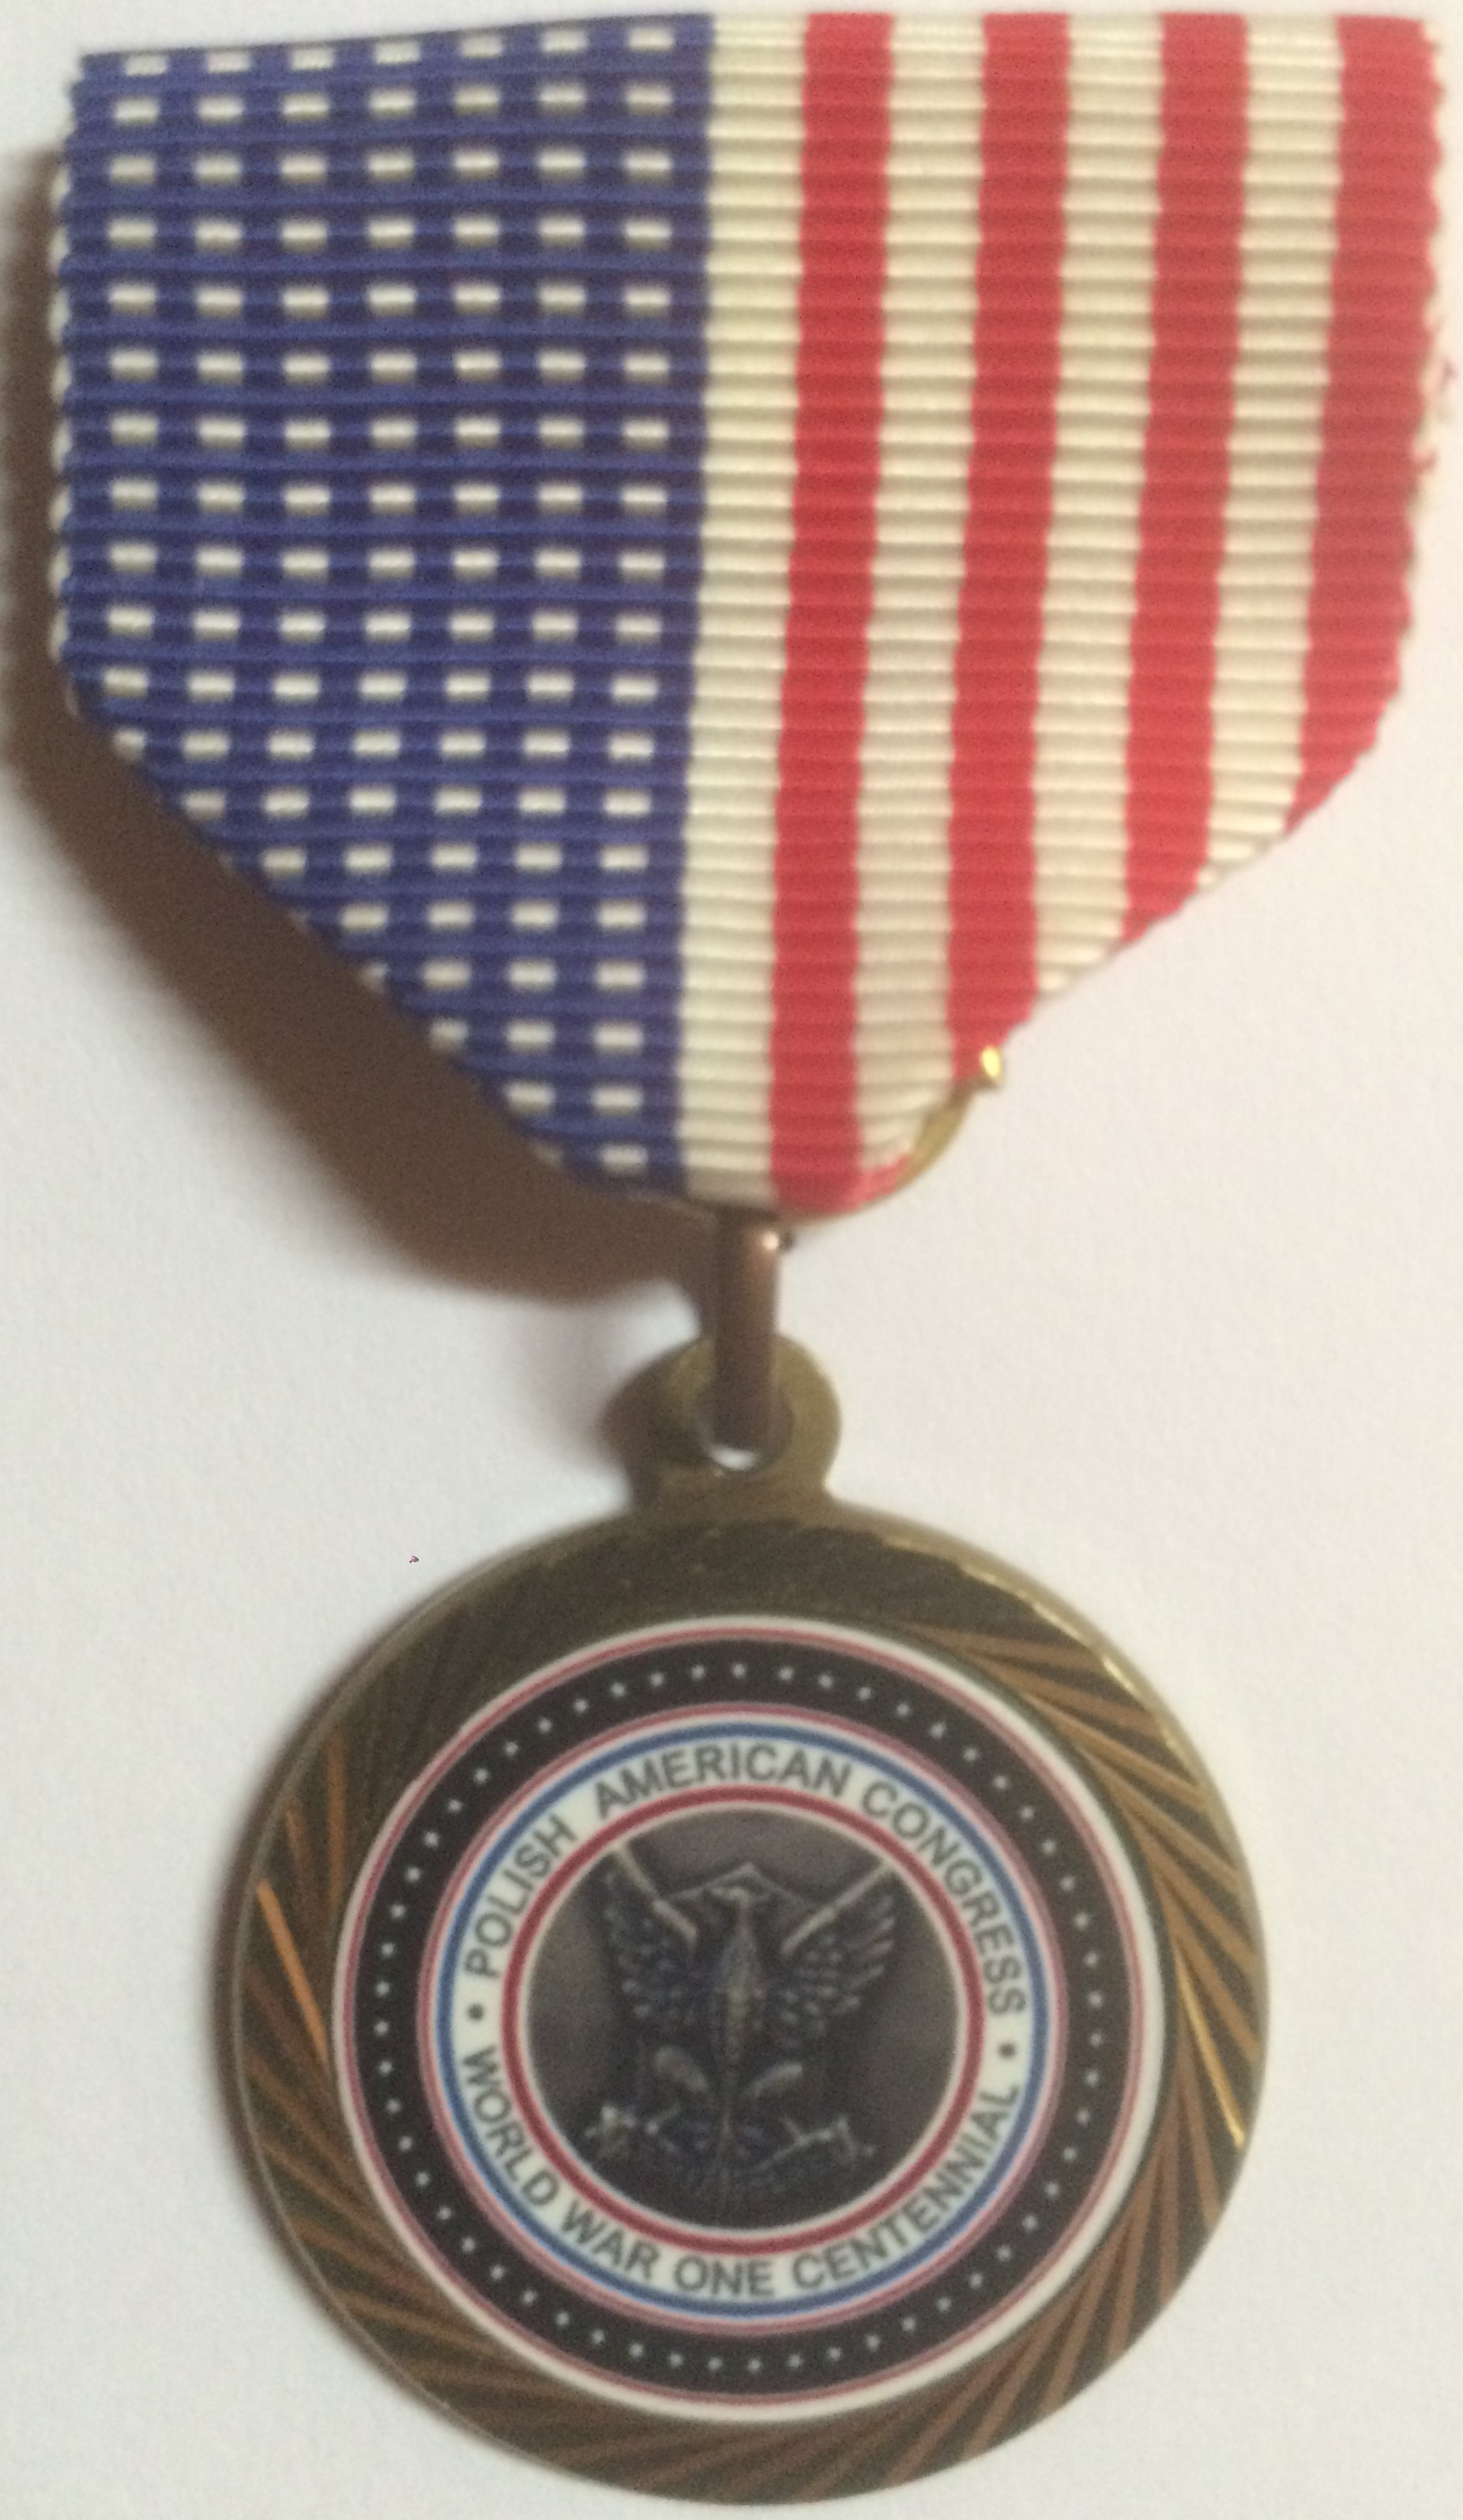 Service Medal of The Polish American Congress World War One Centennial